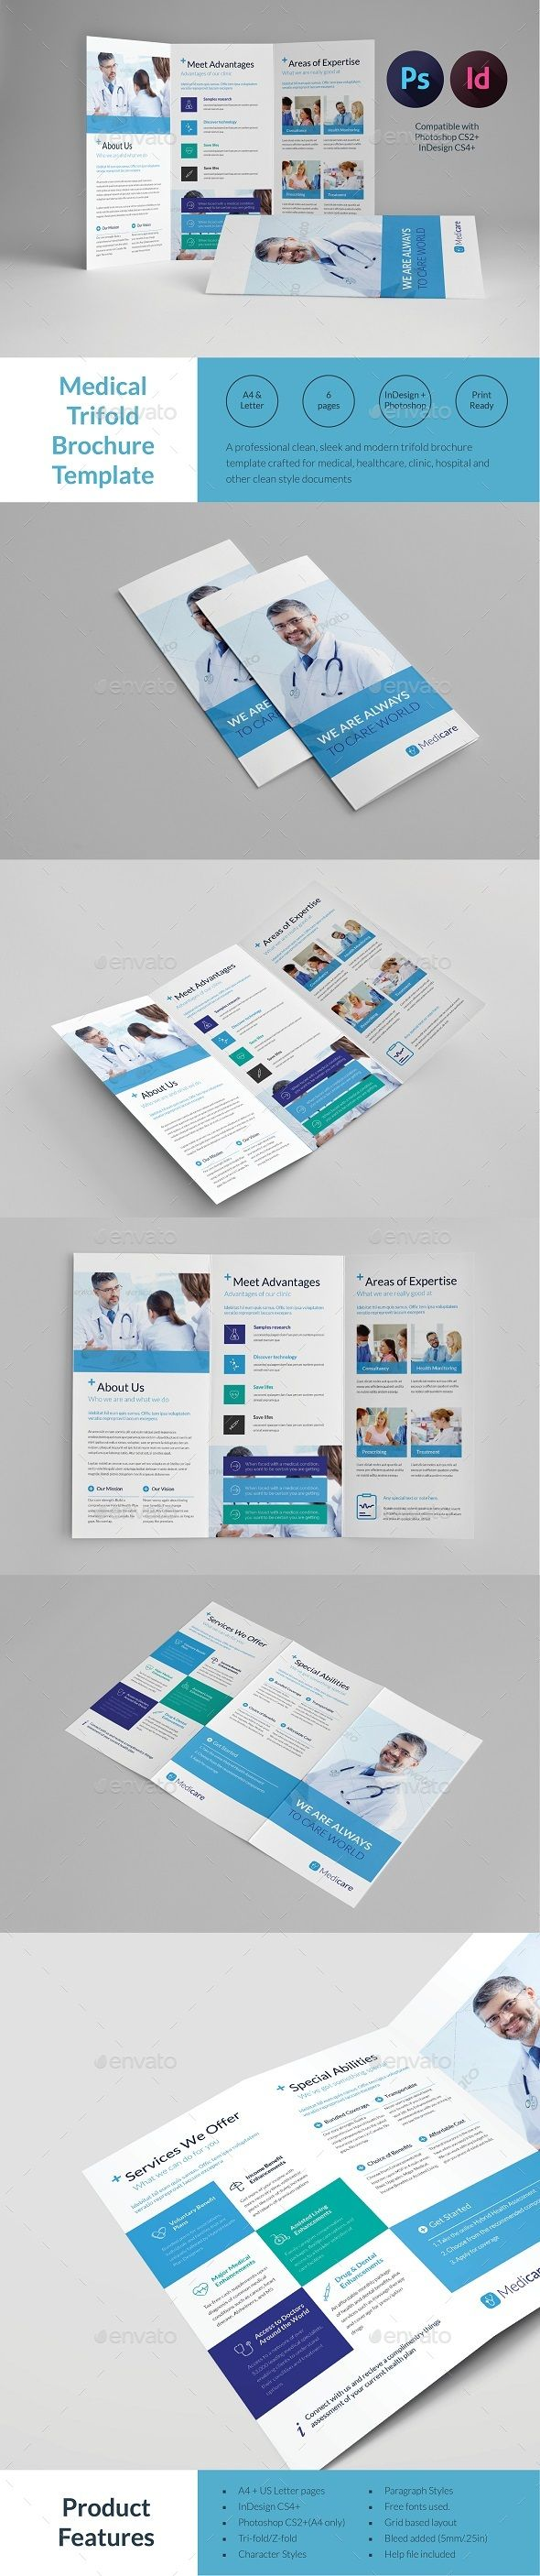 Medical Trifold Brochure Template | Folletos, Plantilla de folleto y ...